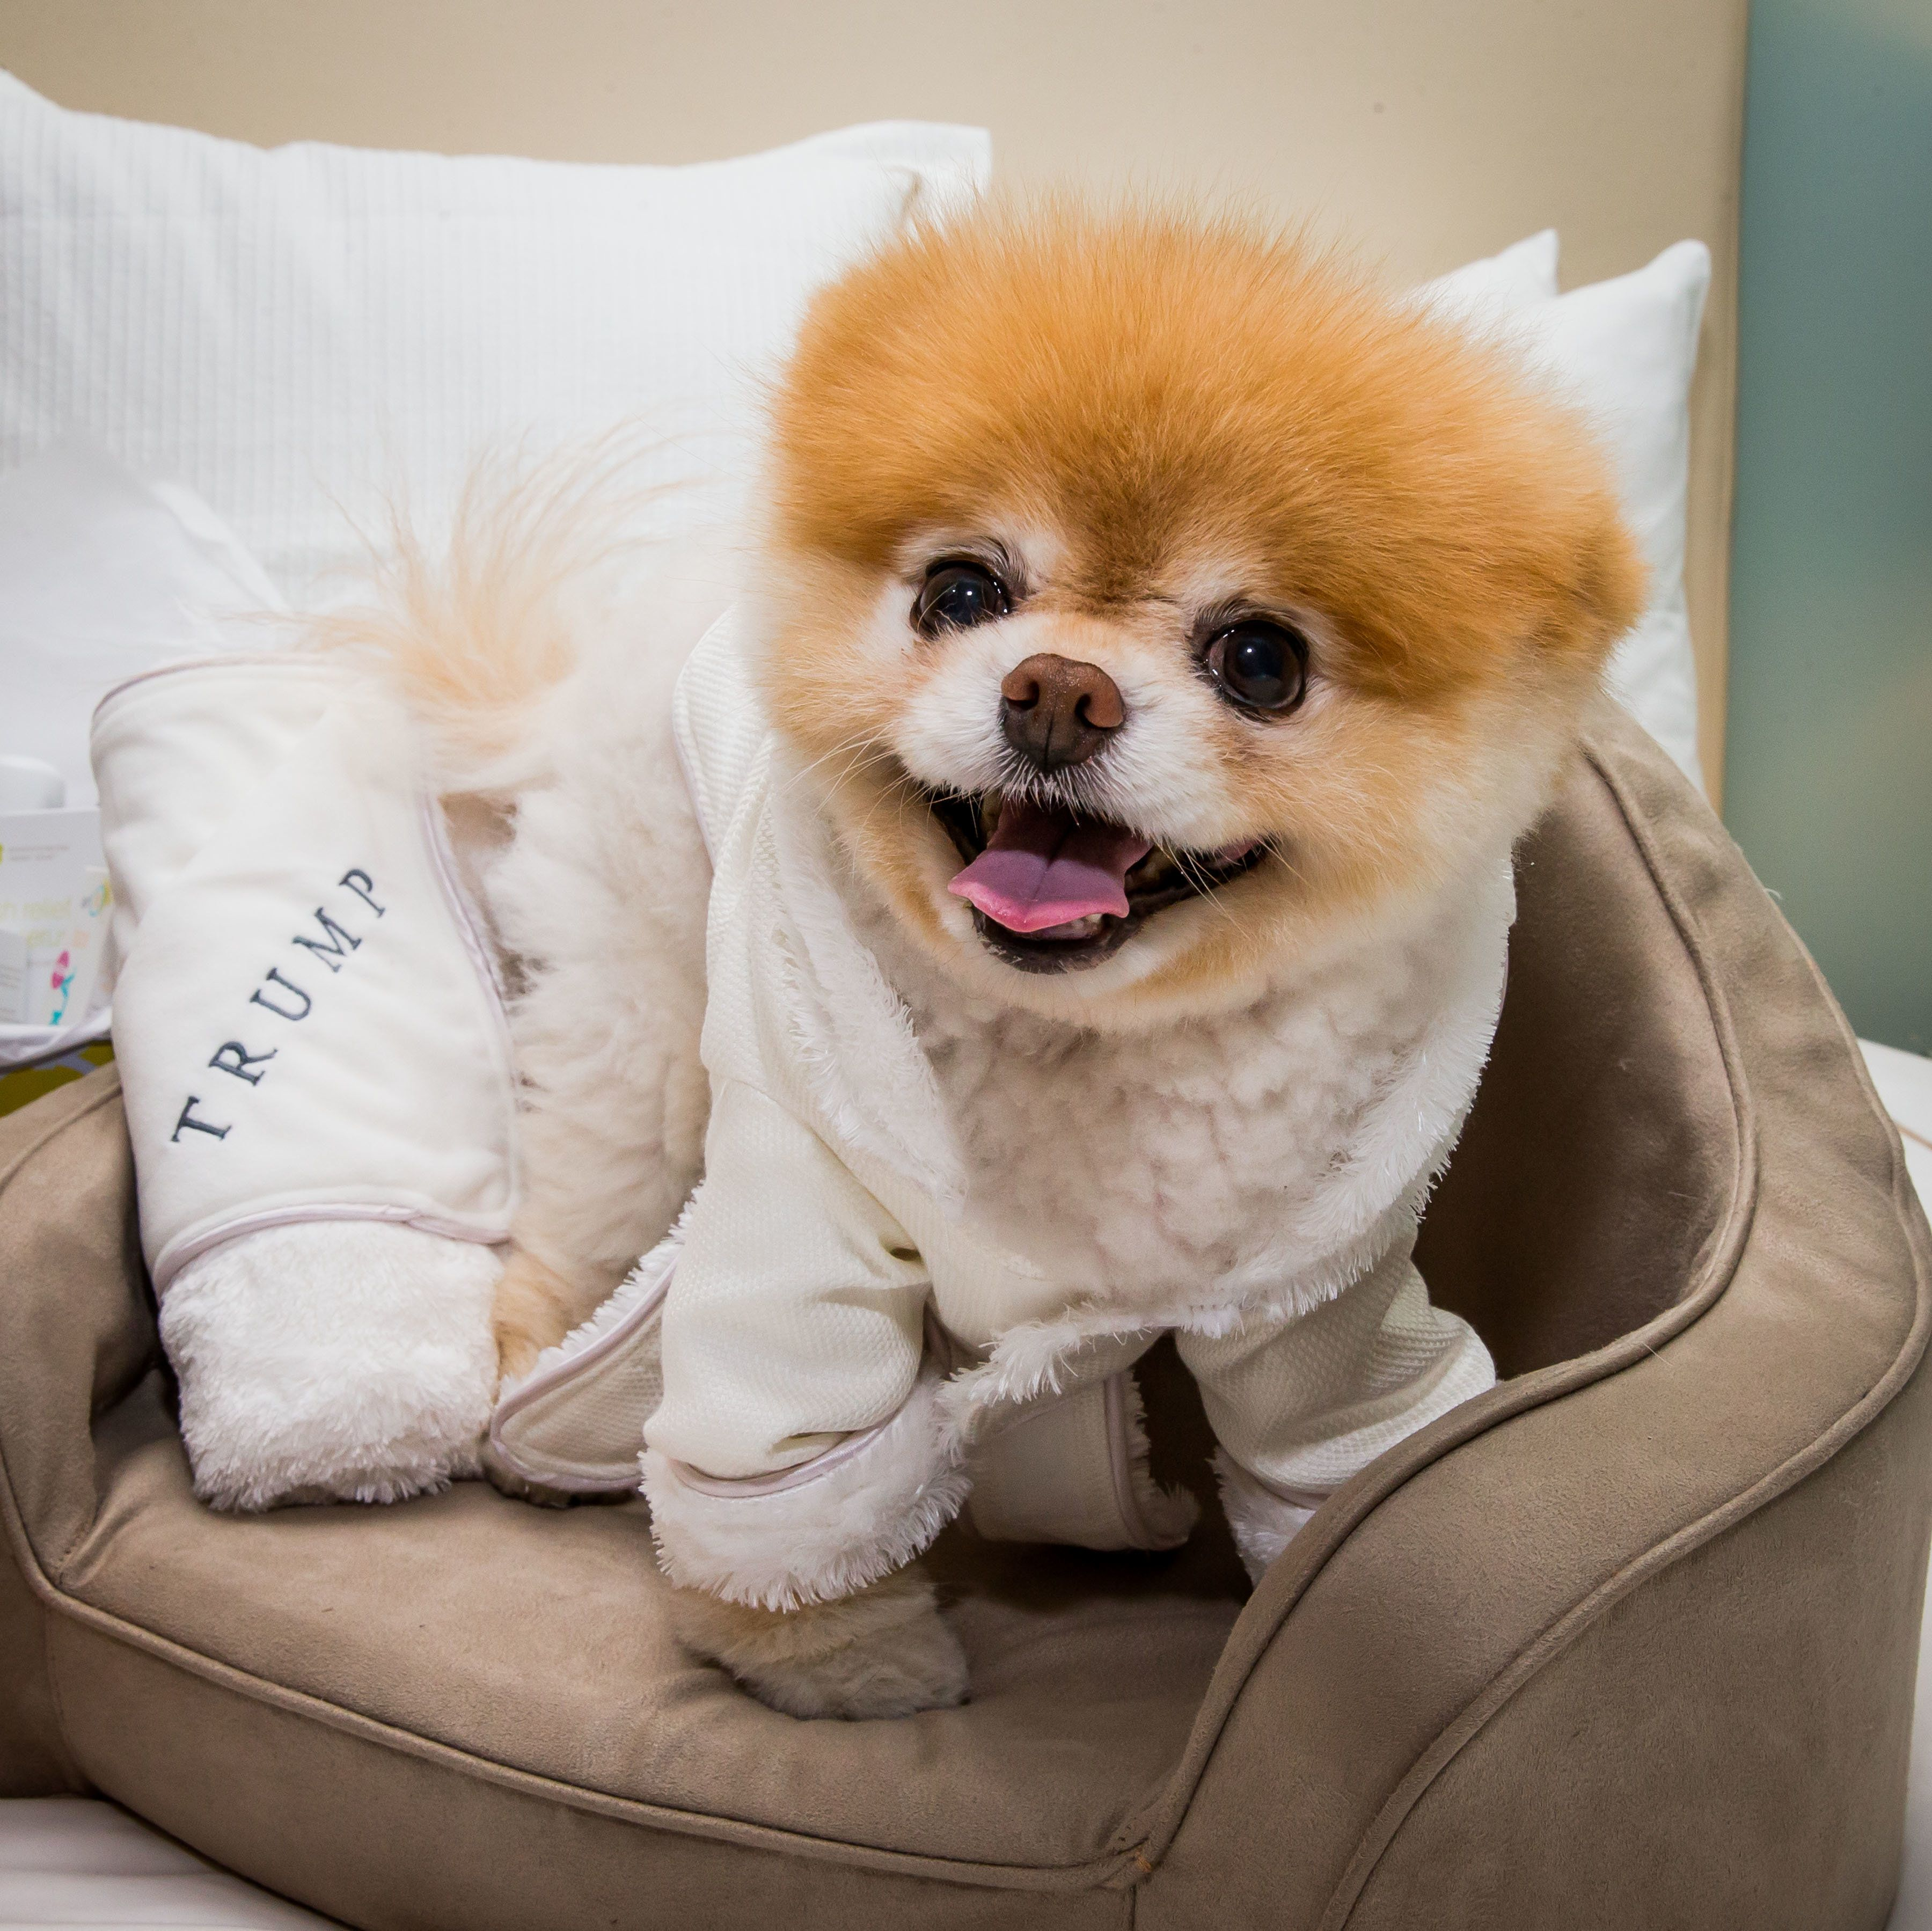 Fans Mourn The Death Of Boo Pomeranian Known As World S Cutest Dog